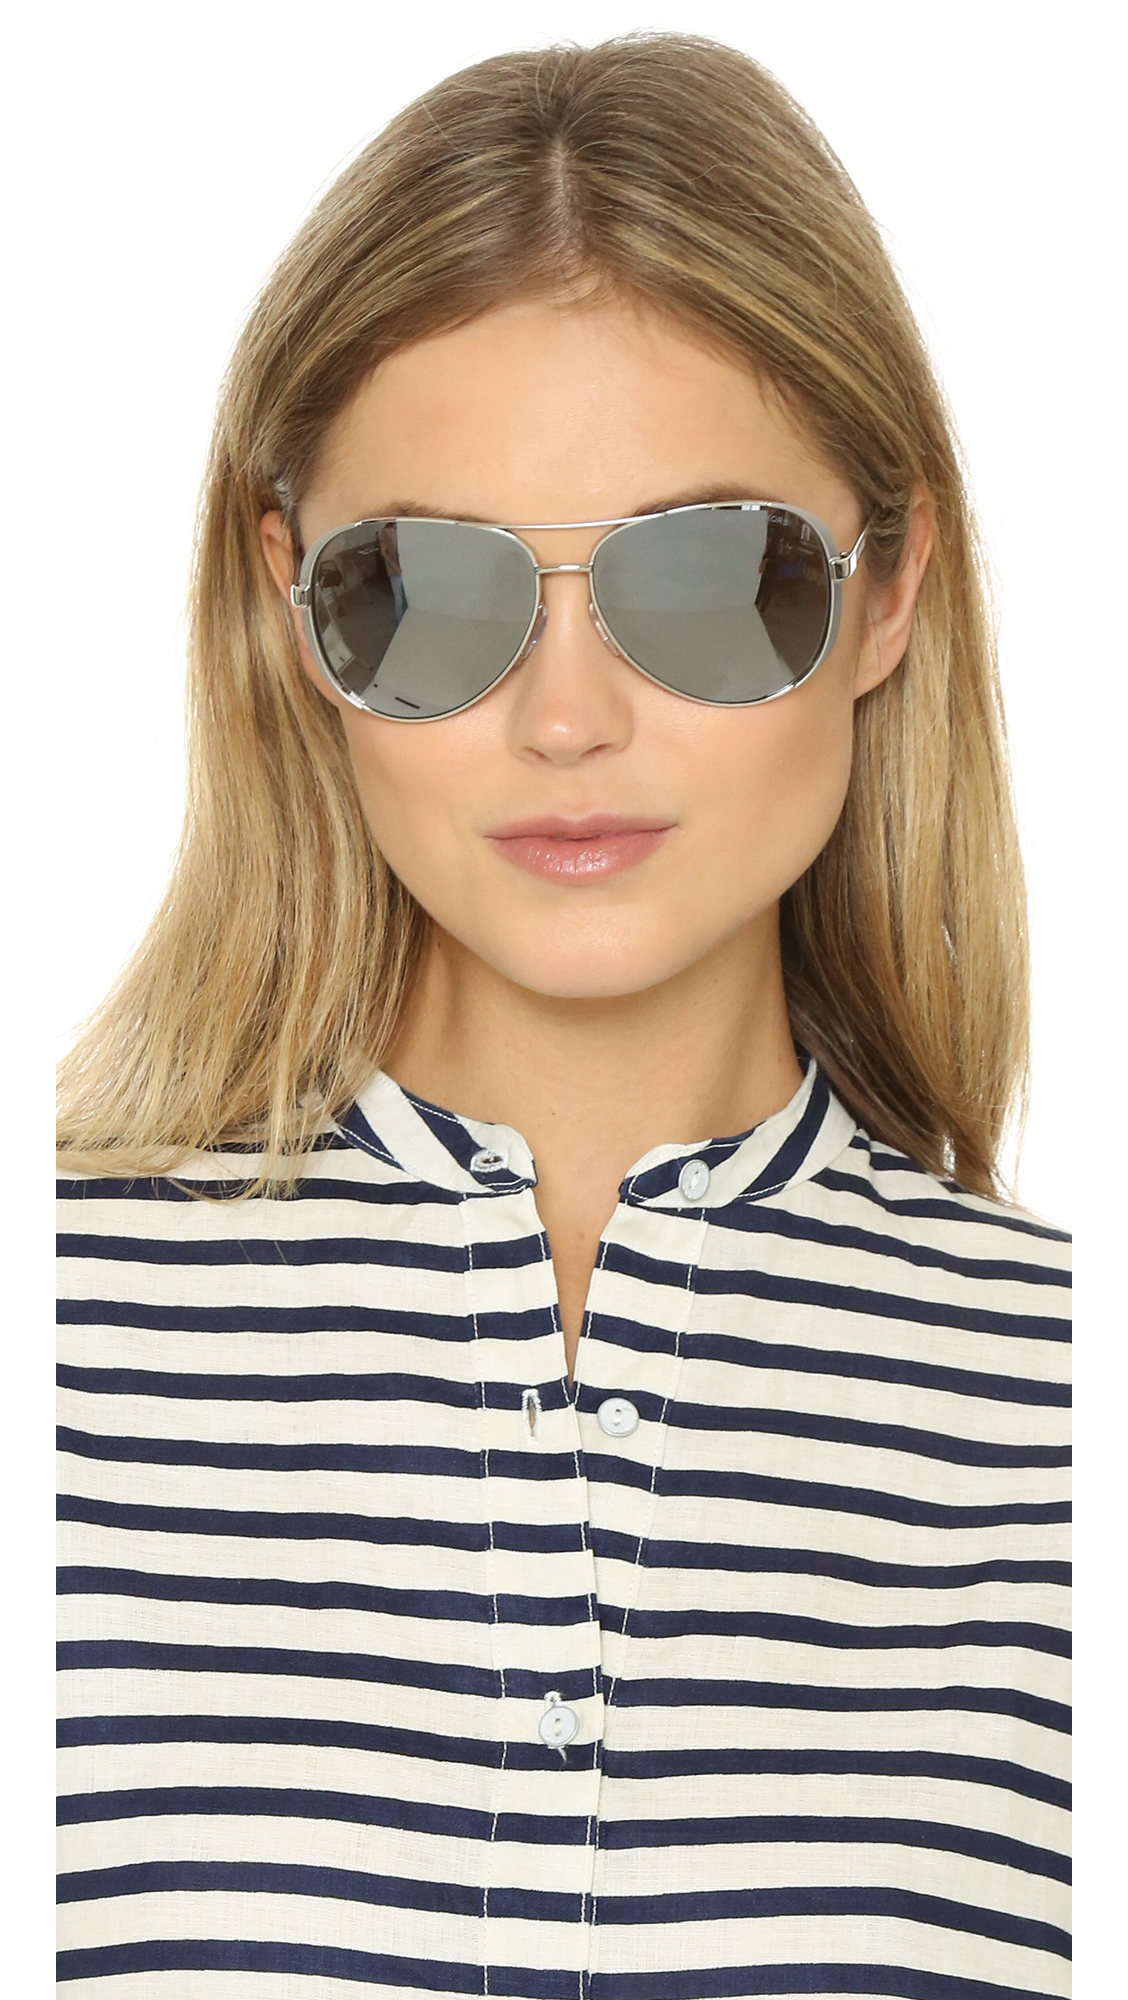 543ca0d2b07d7 ... clearance lyst michael kors chelsea polarized sunglasses in metallic  259cb d0a79